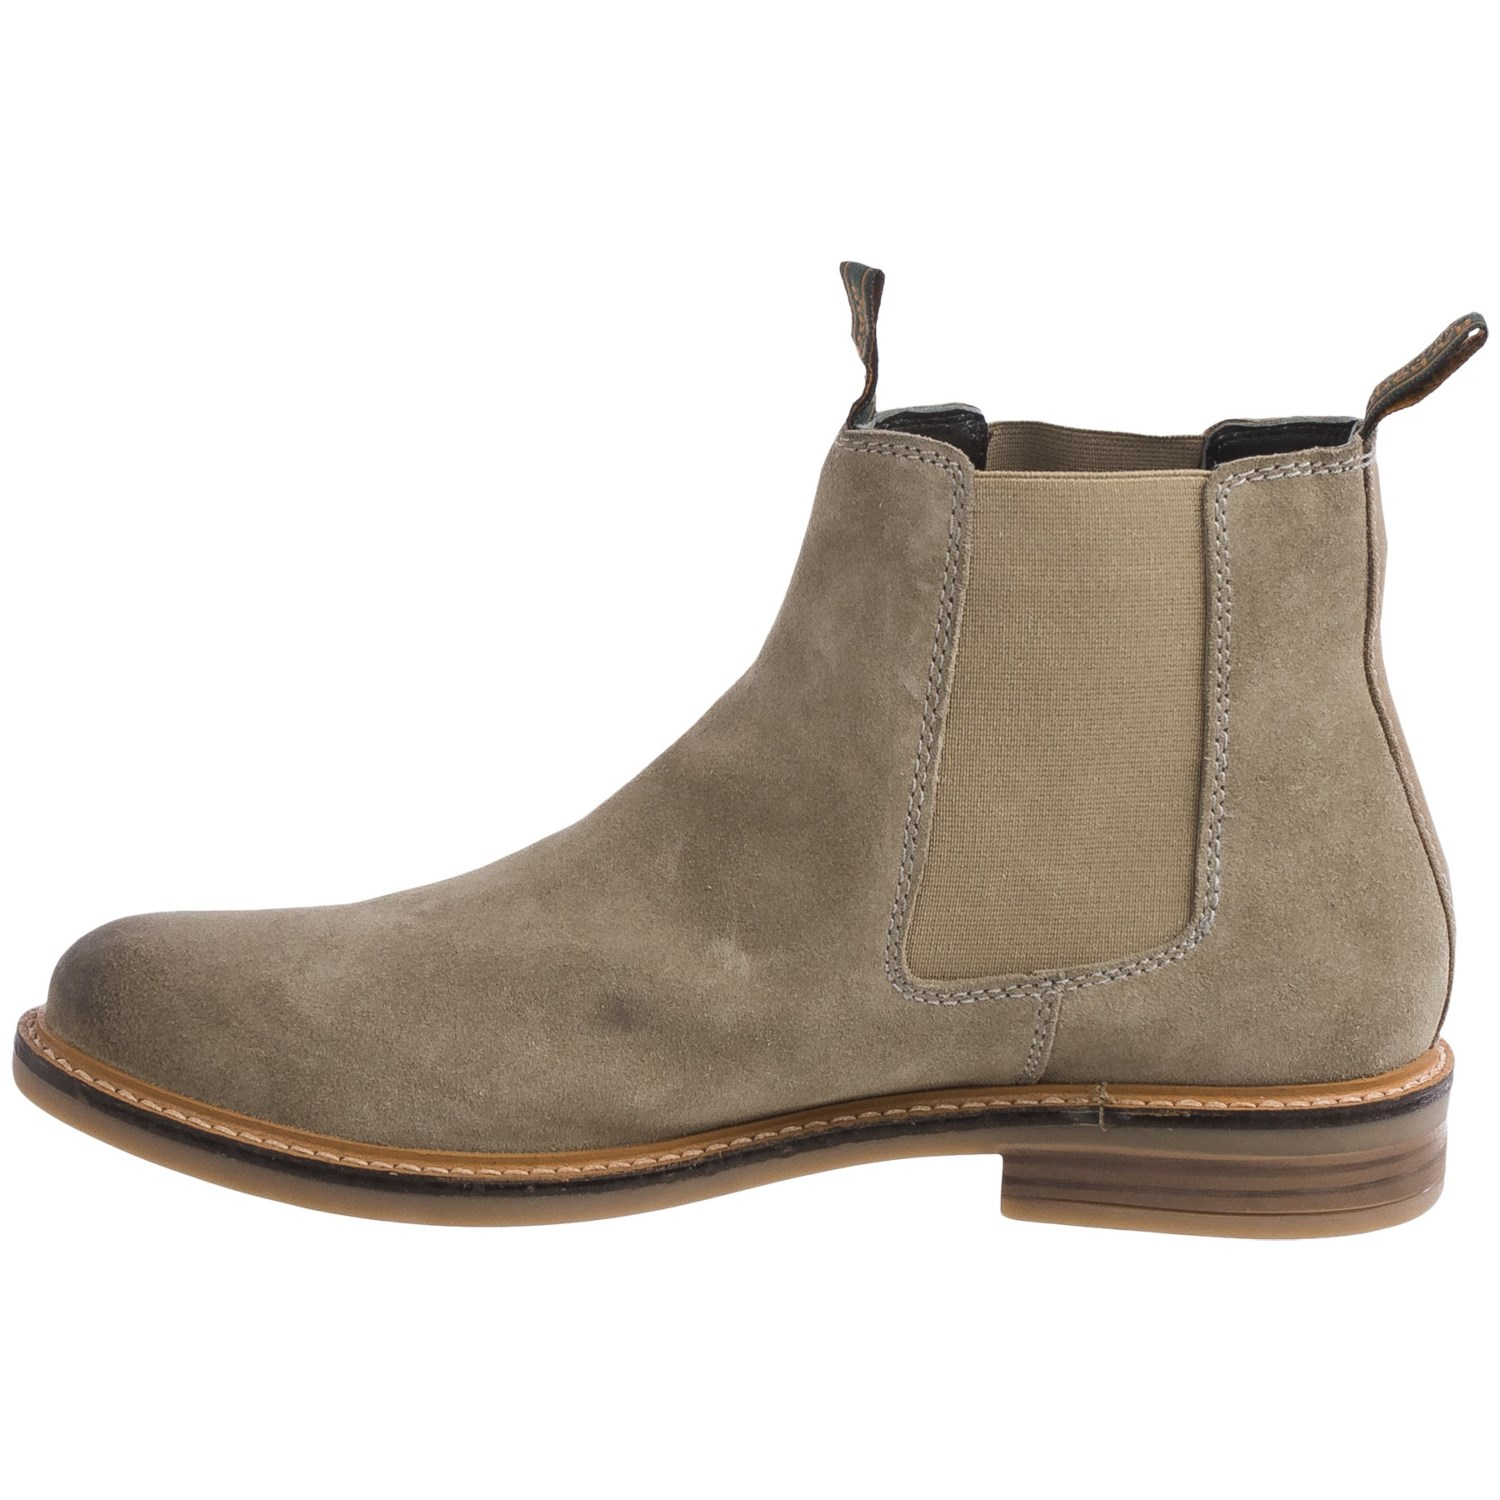 Chelsea Boots For